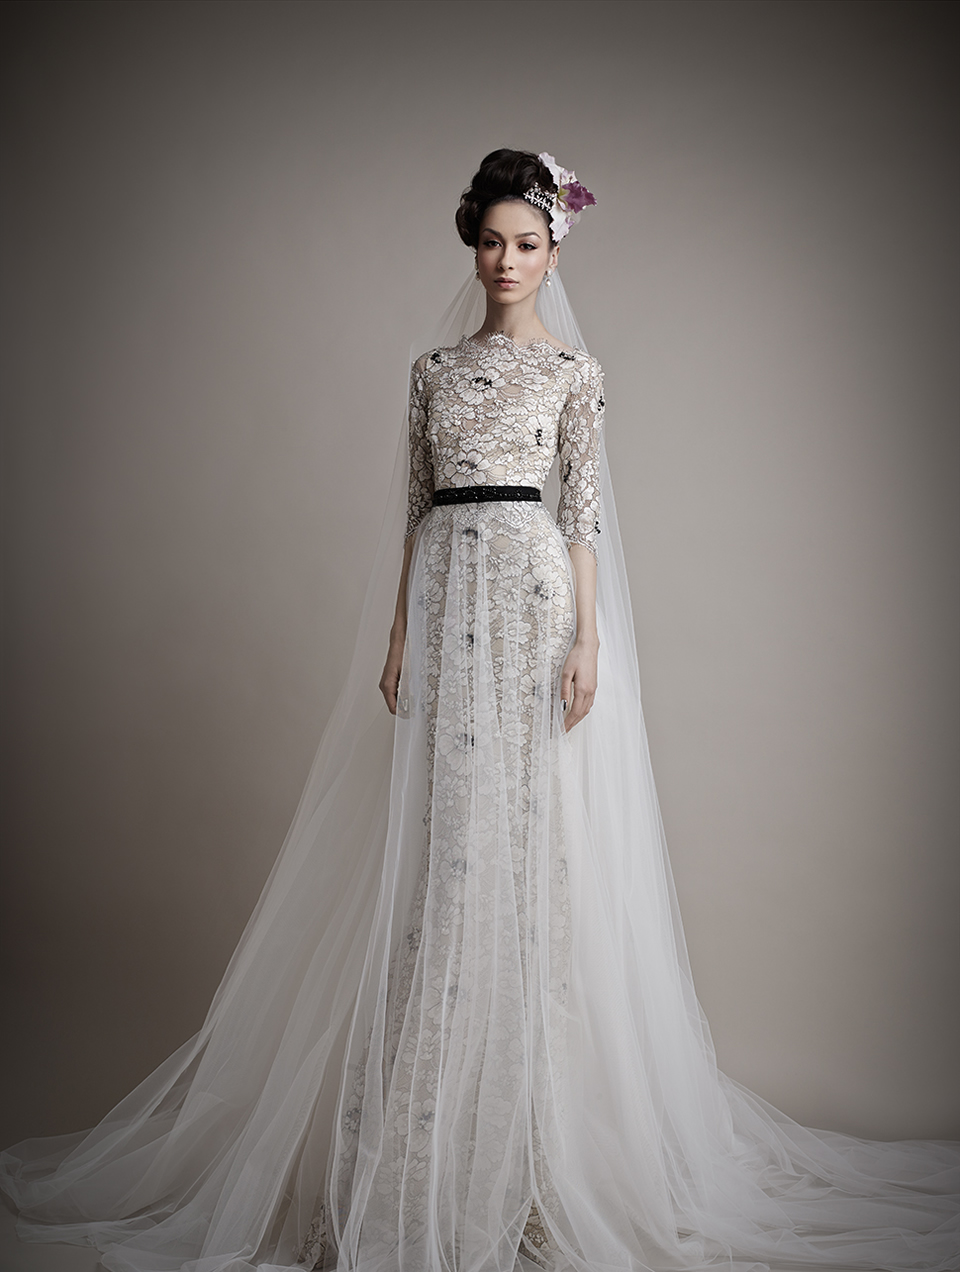 Ersa atelier wedding dresses 2015 modwedding for Ersa atelier wedding dress